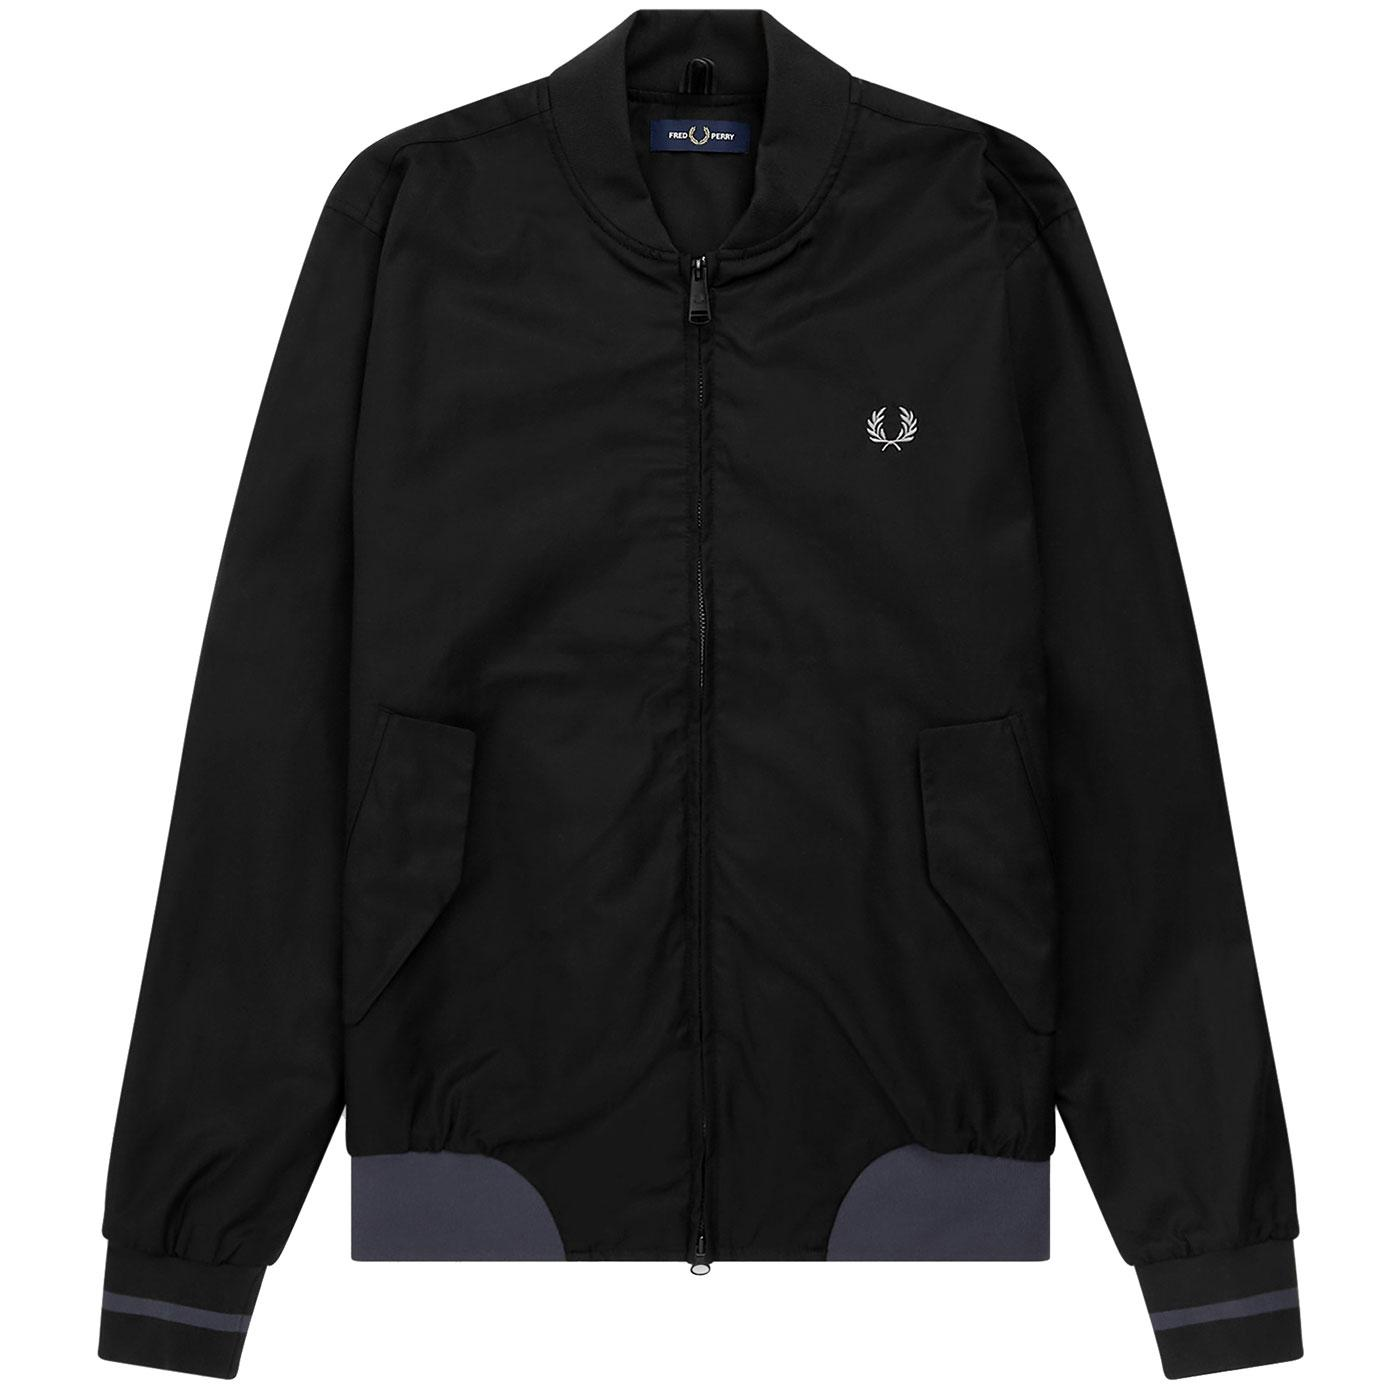 FRED PERRY Men's Retro Mod Twill Bomber Jacket (B)